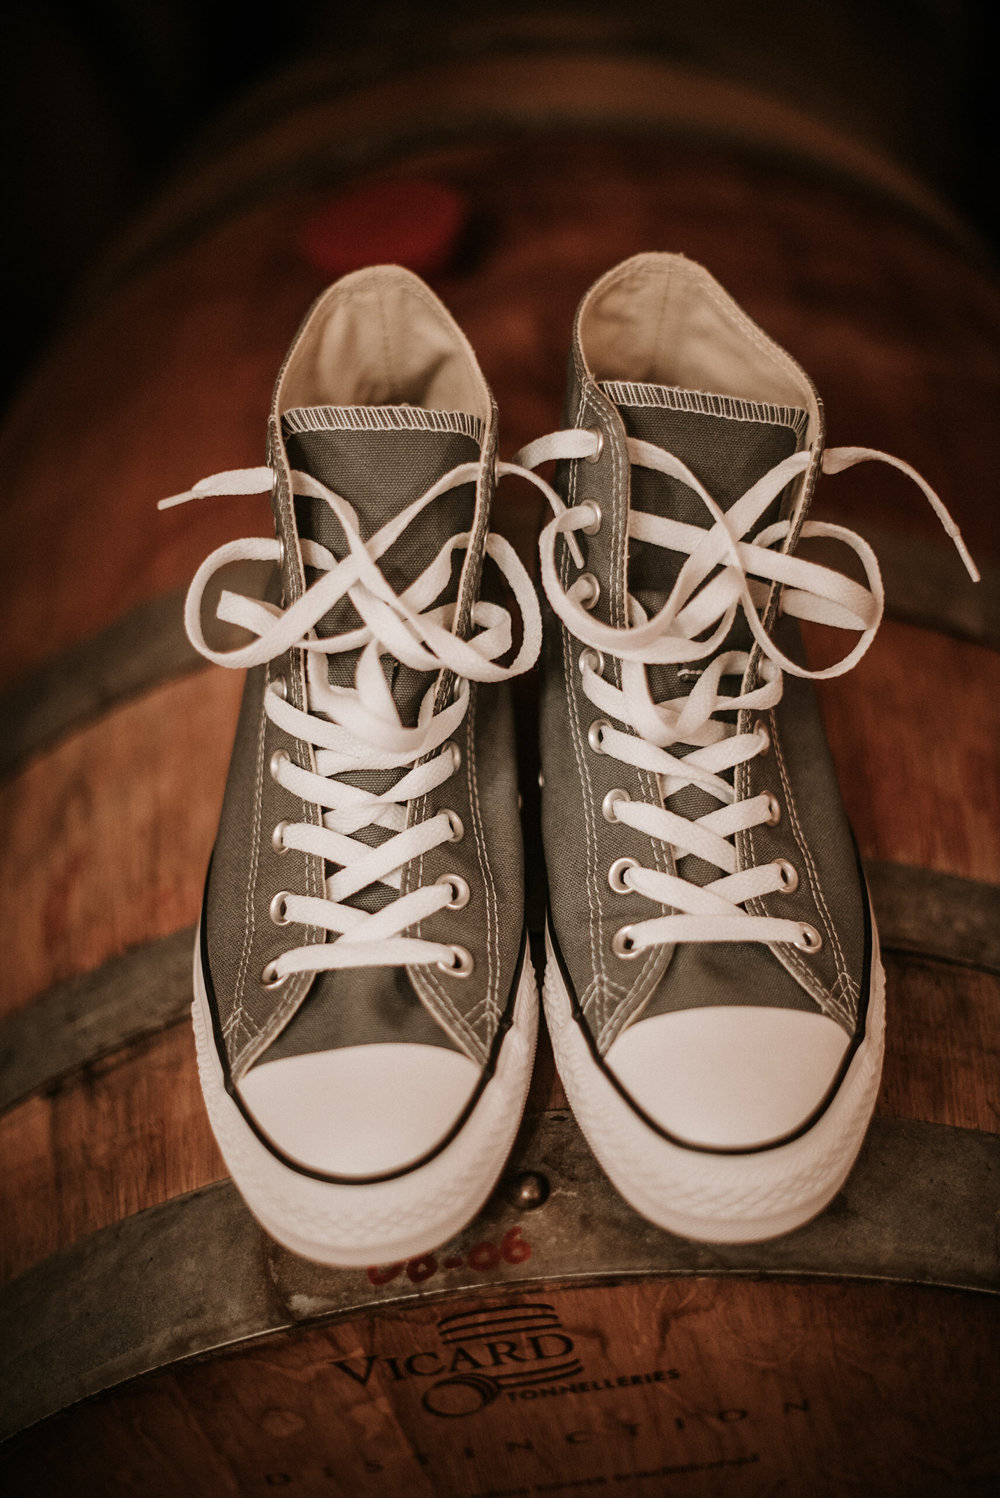 Converse on a wine barrel